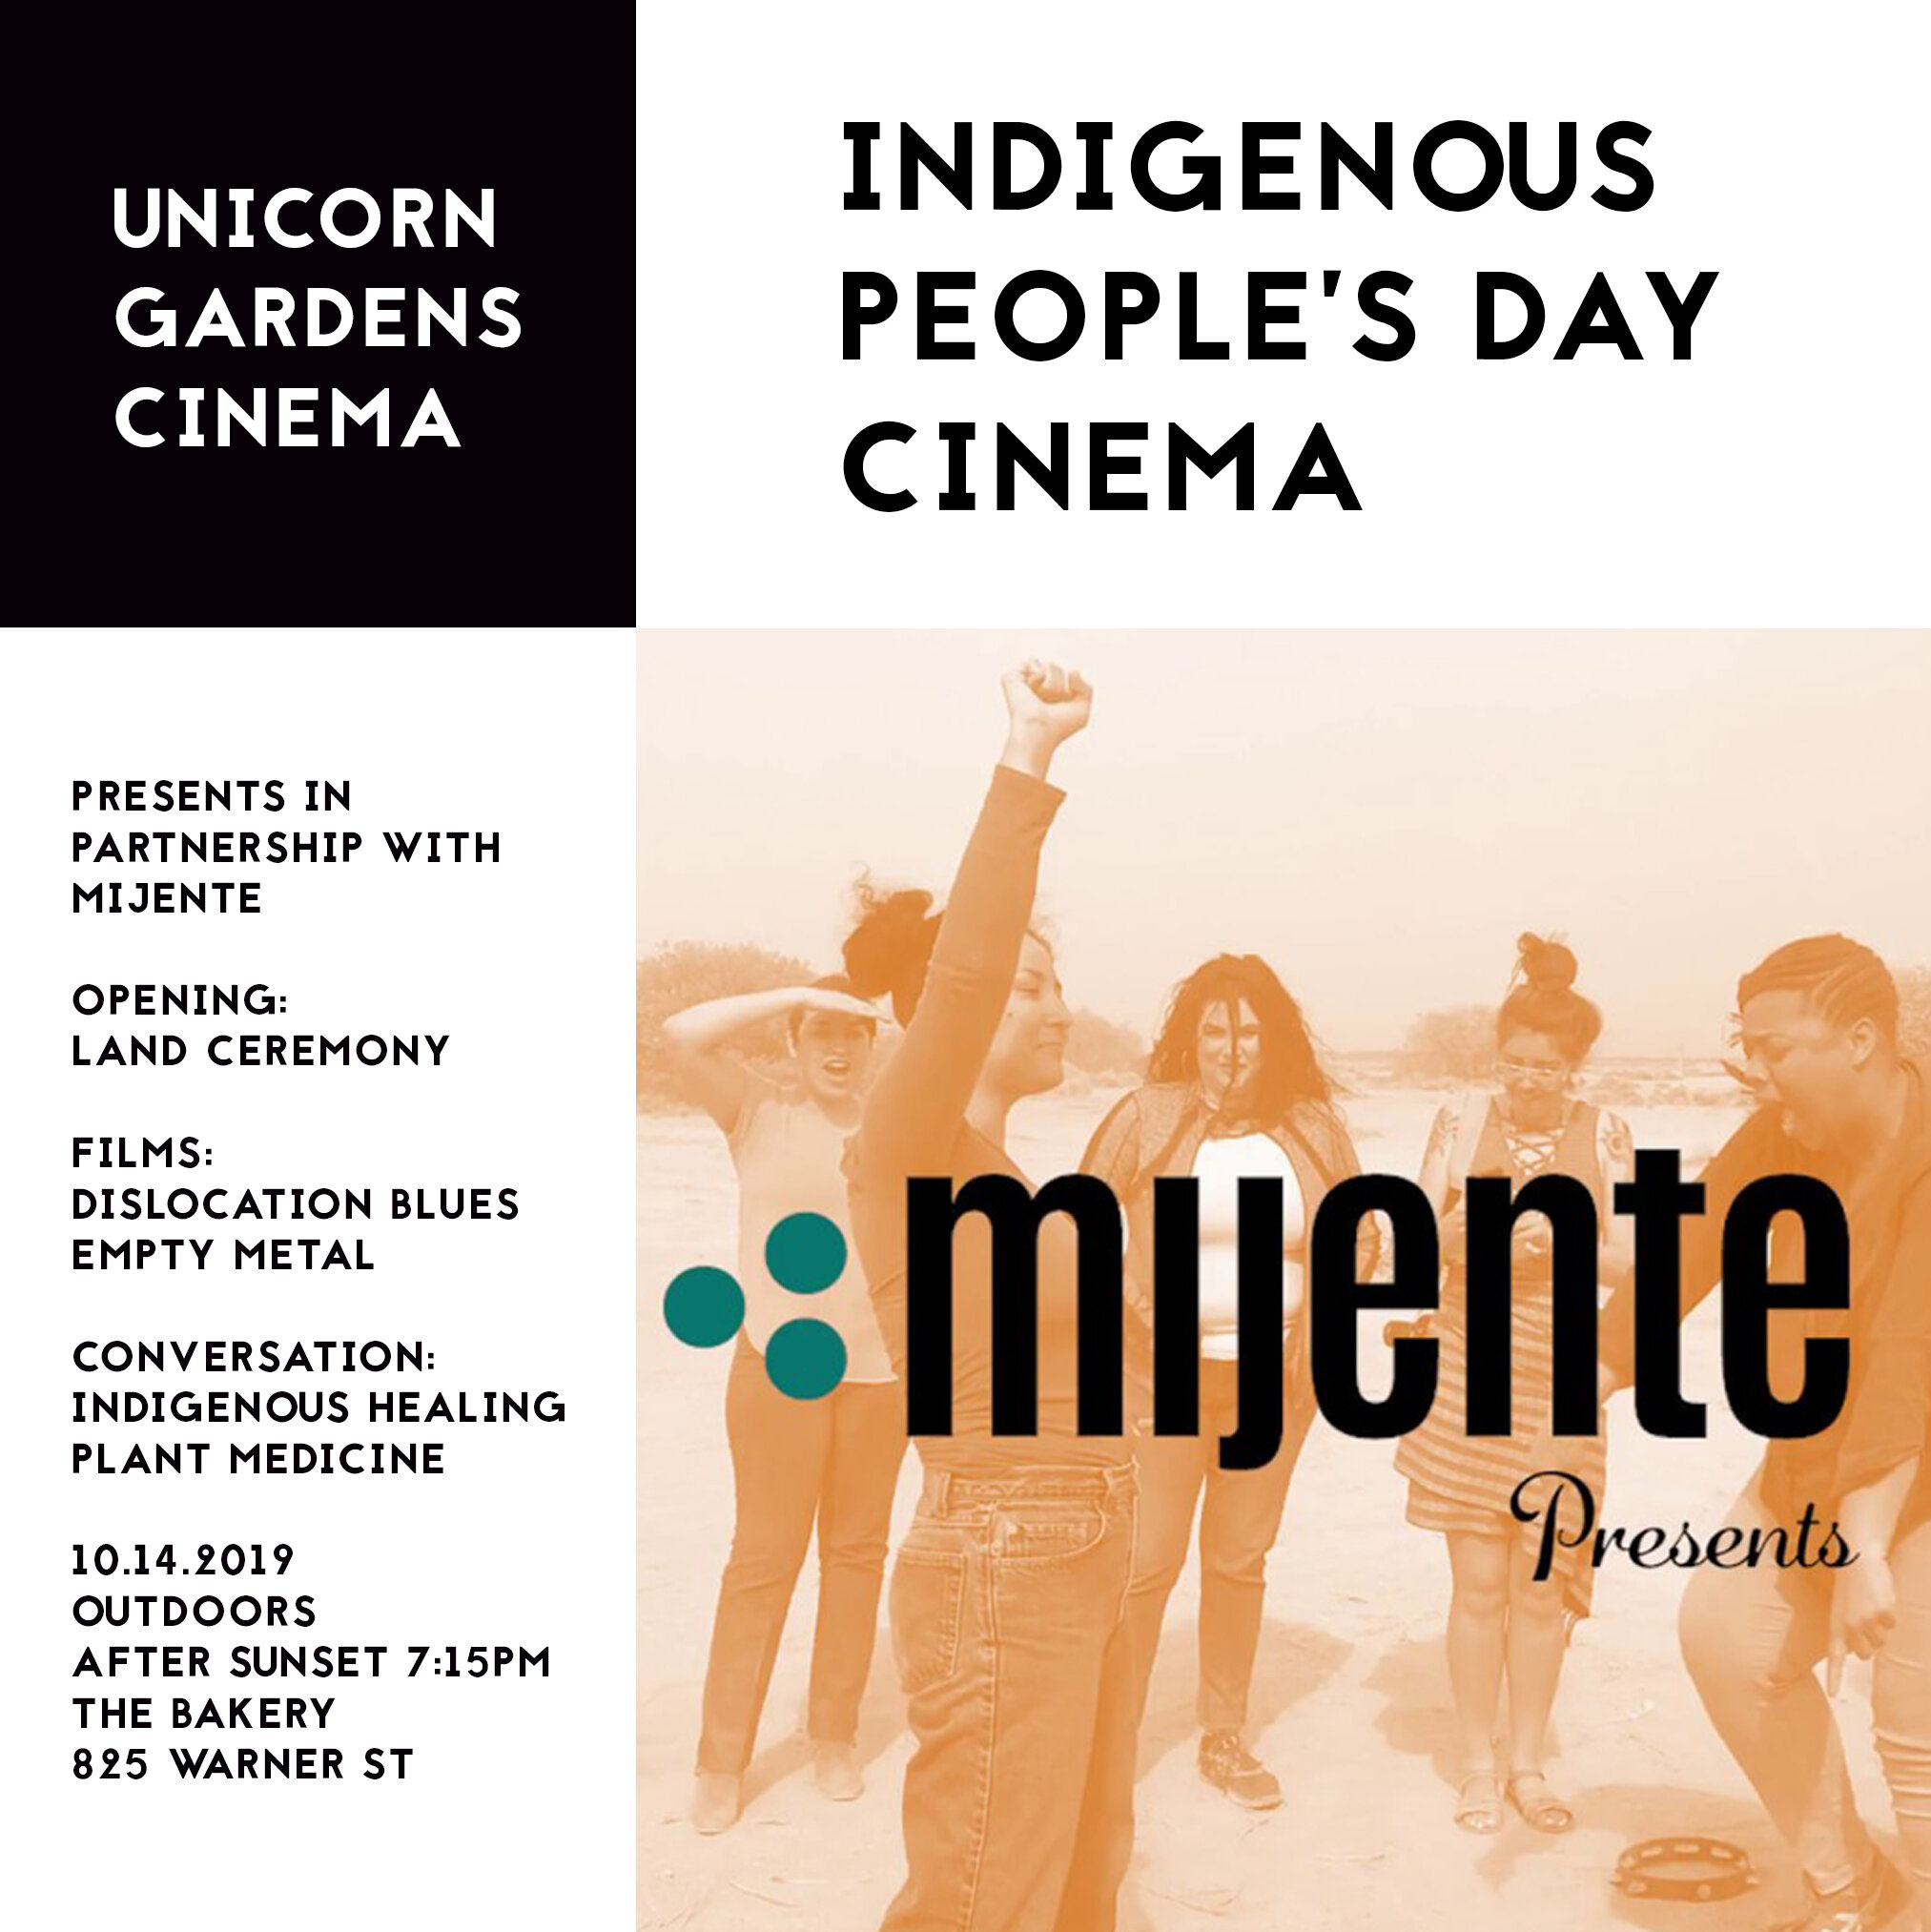 Indigenous People's Day Cinema - Oct 14, 2019